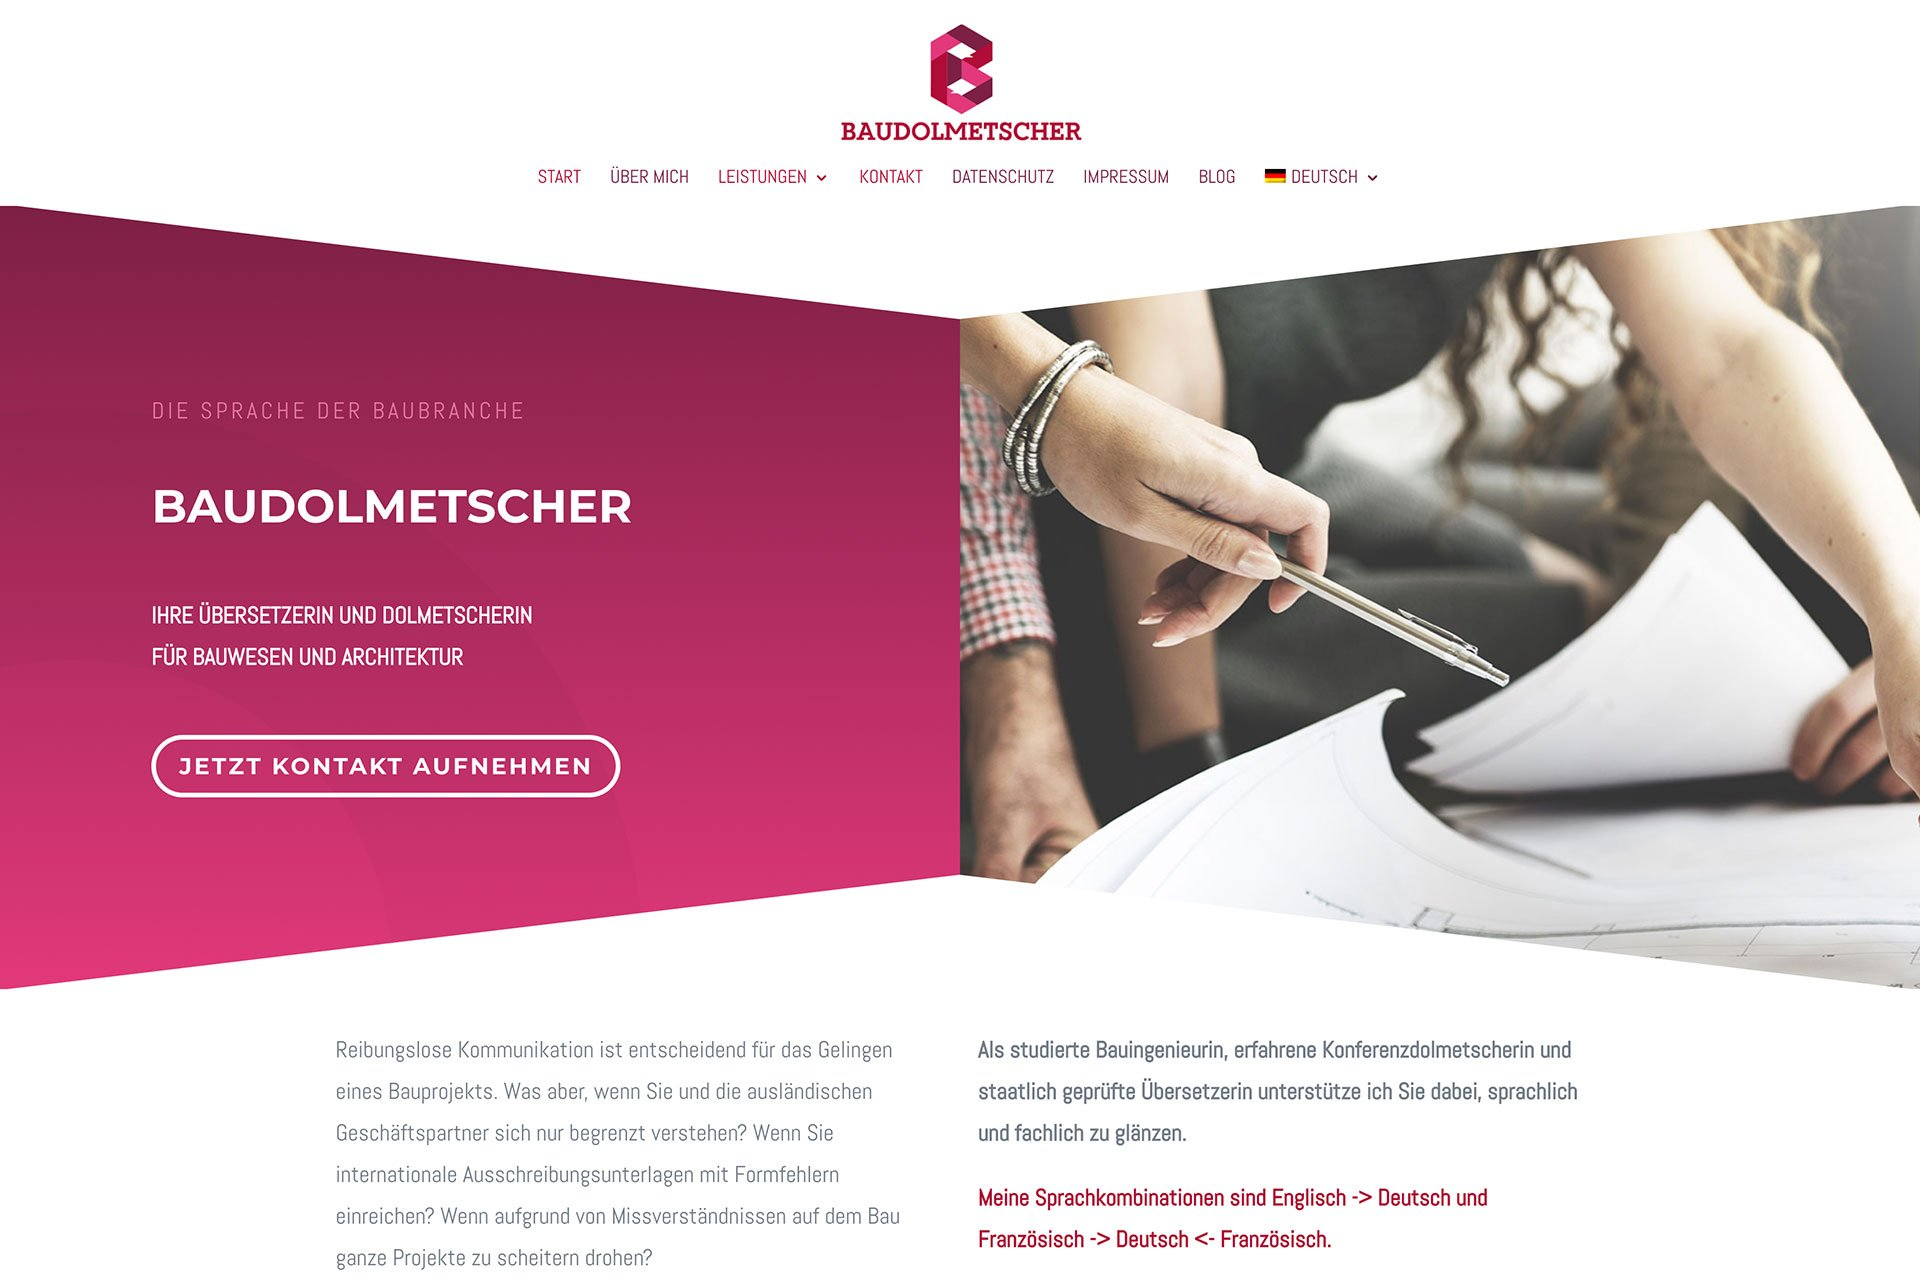 digitallotsen-baudolemtscher-webdesign-wordpress